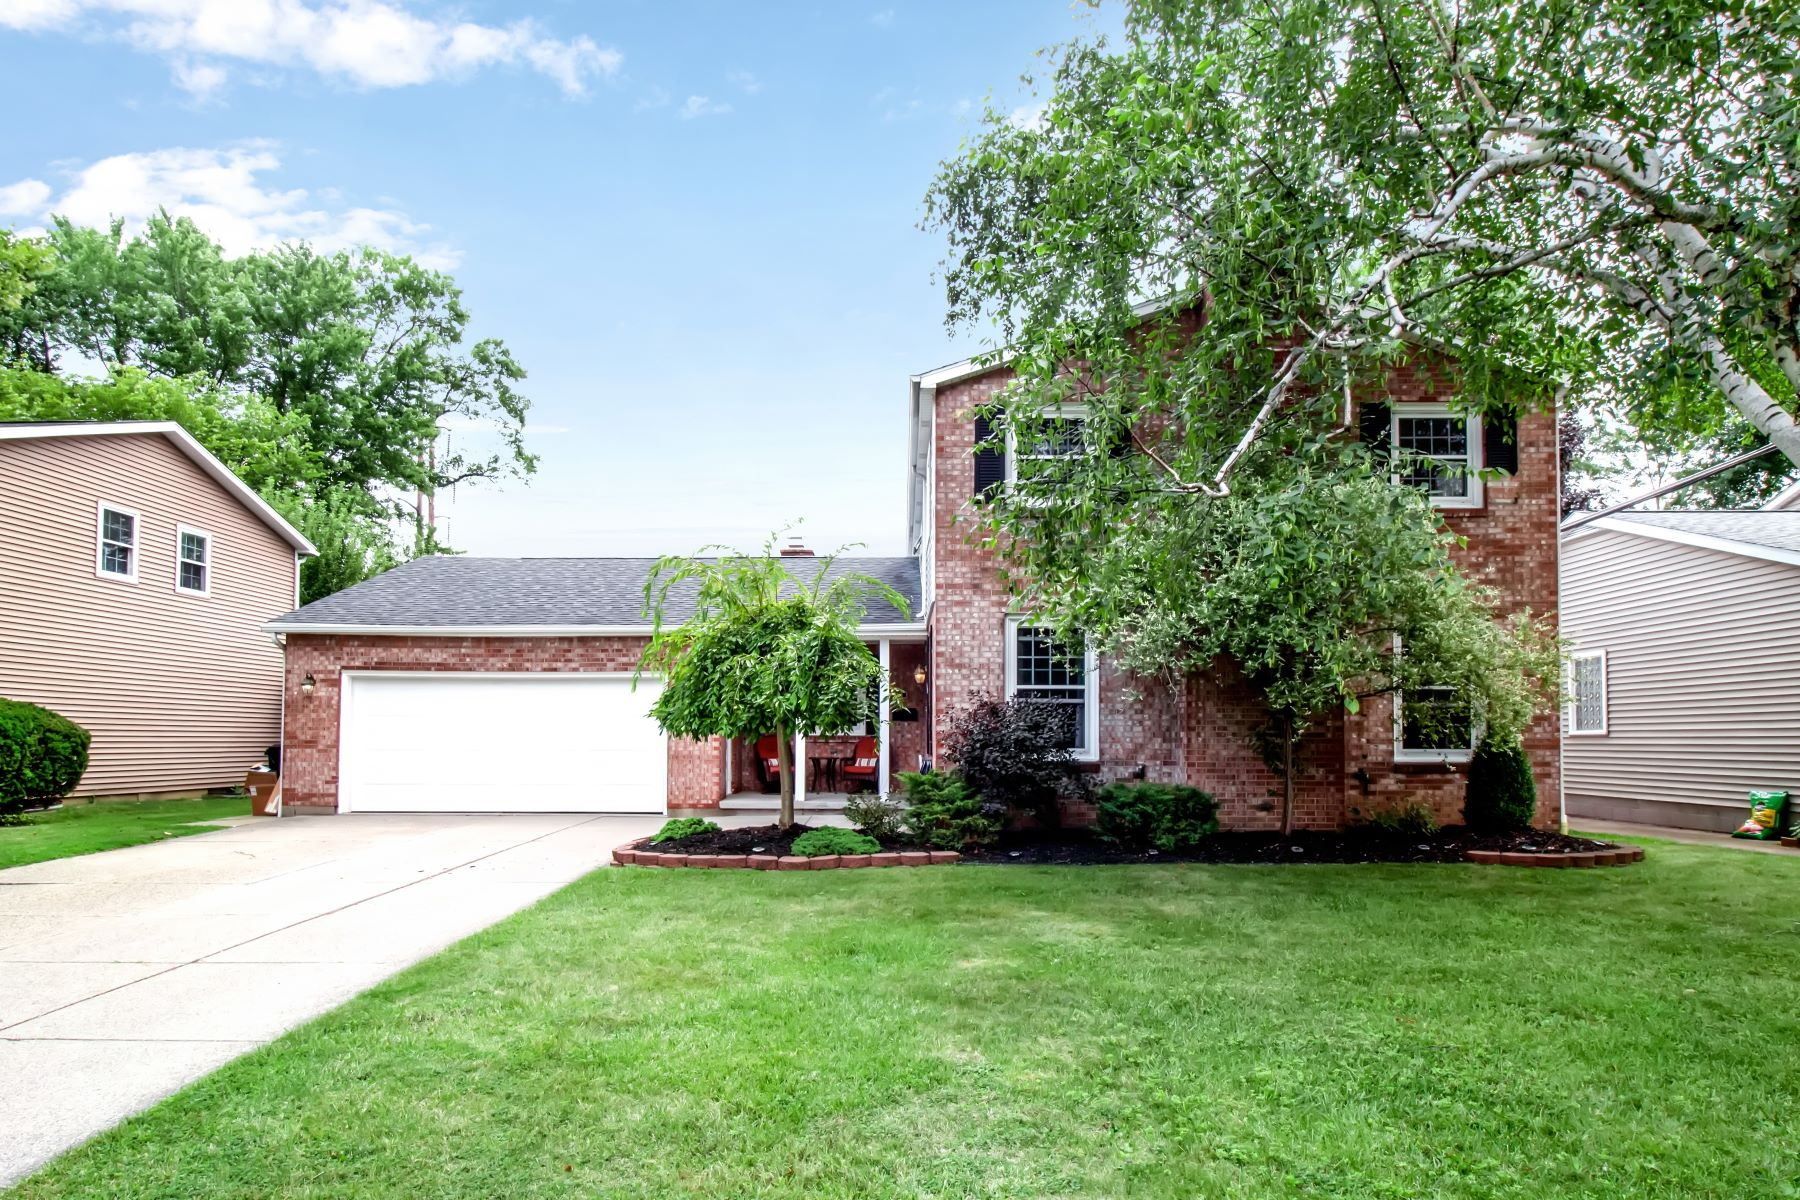 Single Family Homes for Sale at Willowgrove Colonial 149 Willowgrove South Tonawanda, New York 14150 United States